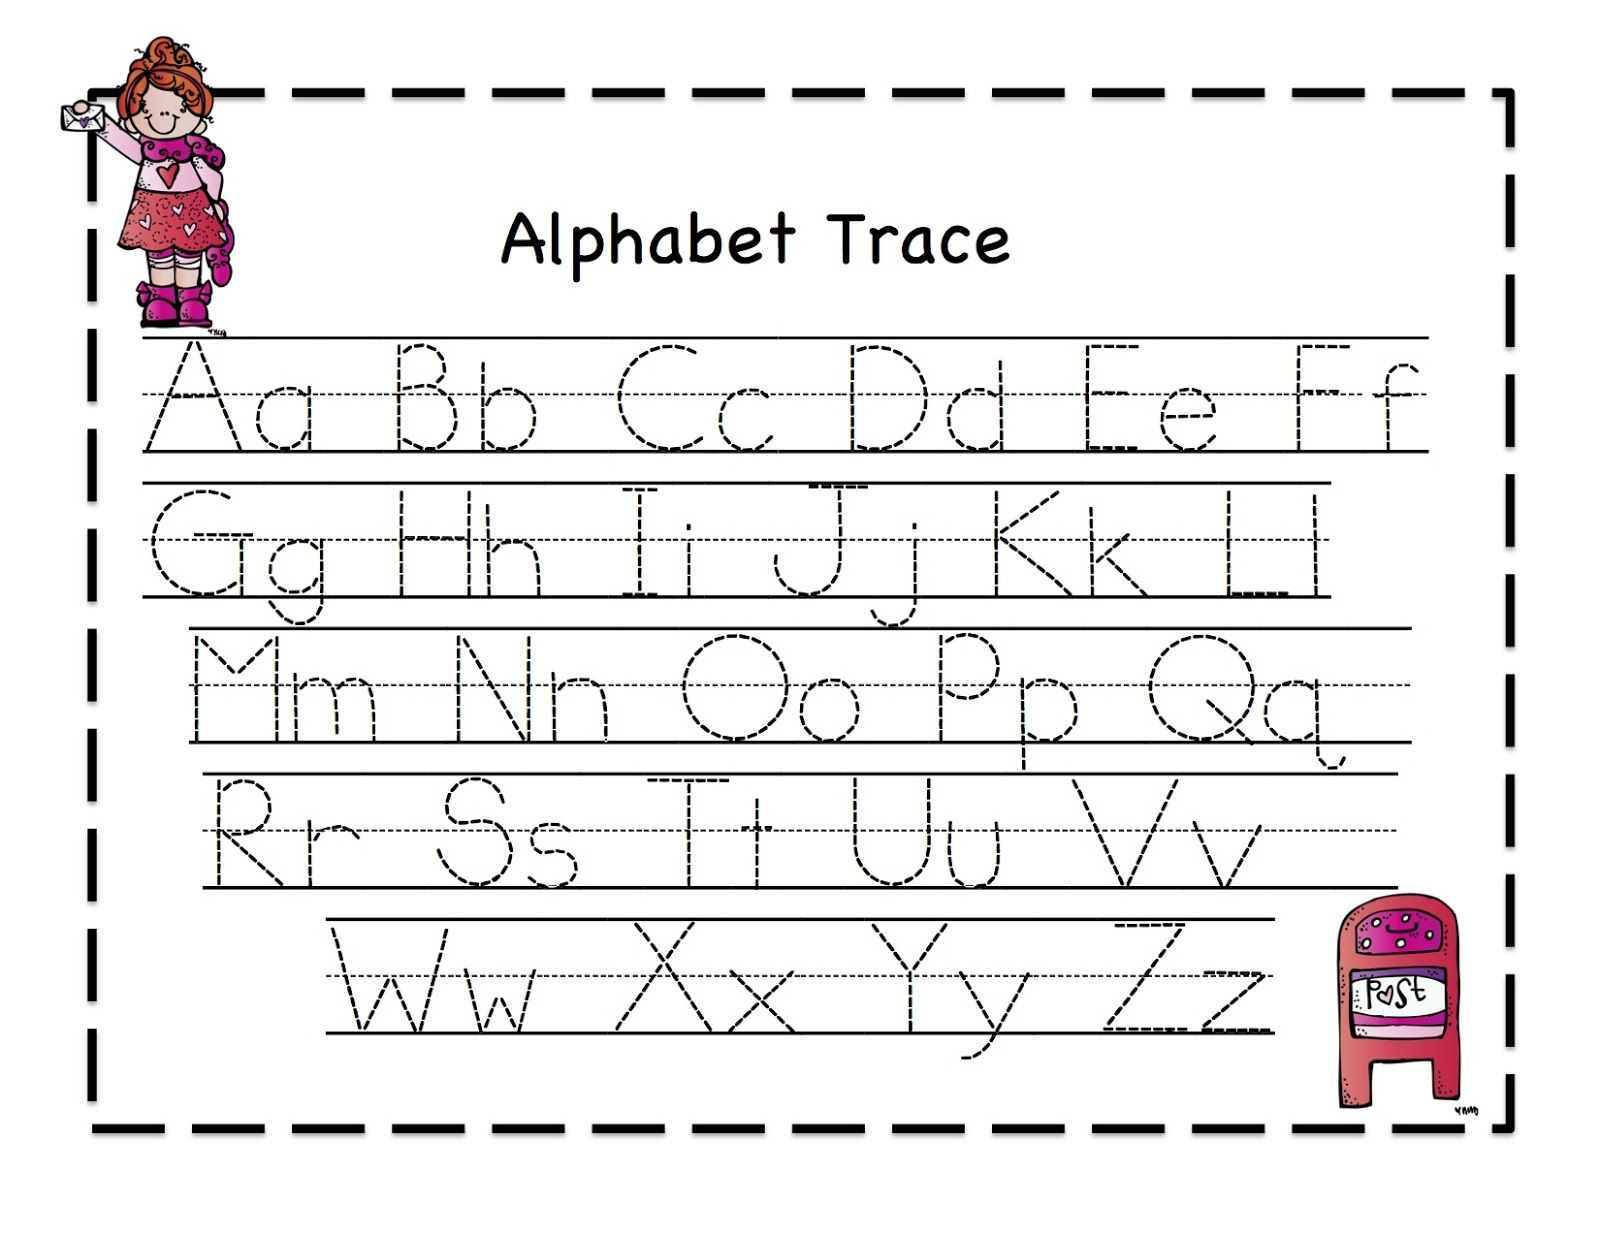 Worksheets Alphabet Tracing Worksheet preschool printables valentine february ideas pinterest traceable alphabet letters for your kindergarten students to start learning of what will makes kids enjoy the w